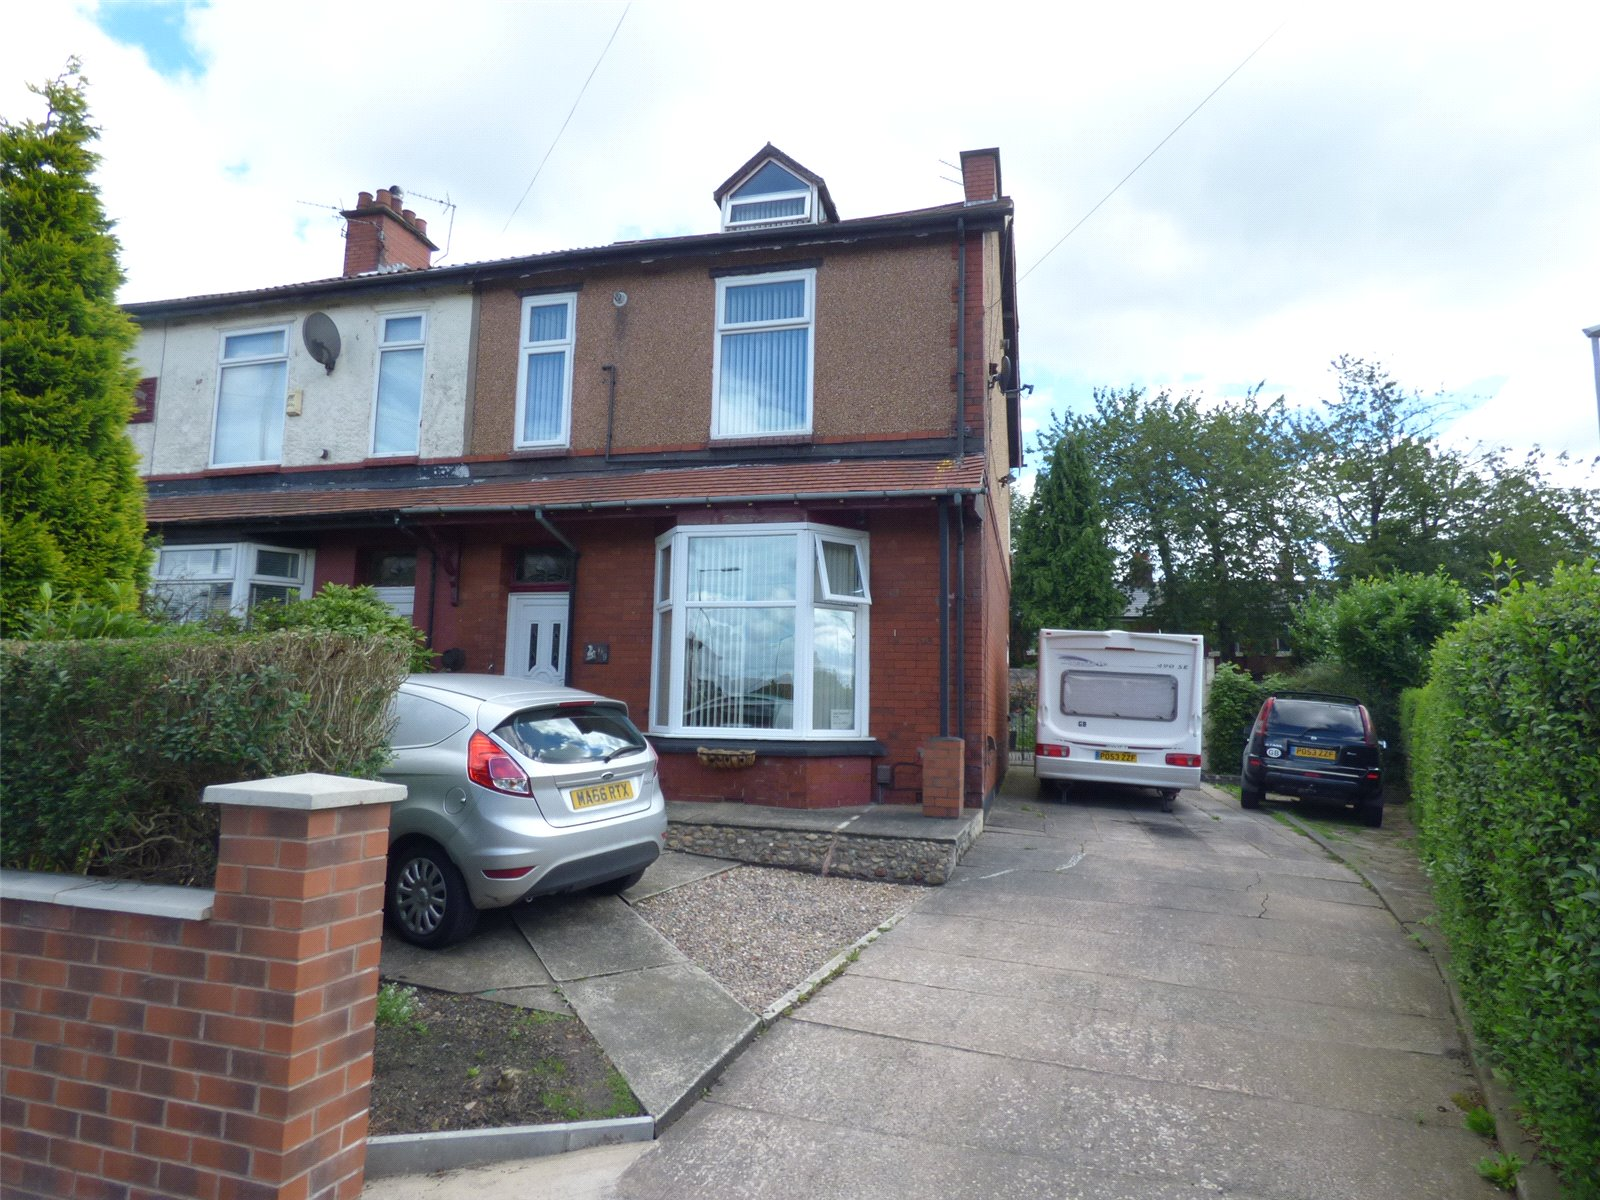 4 Bedrooms End Of Terrace House for sale in Limeside Road, Hollinwood, Oldham, OL8